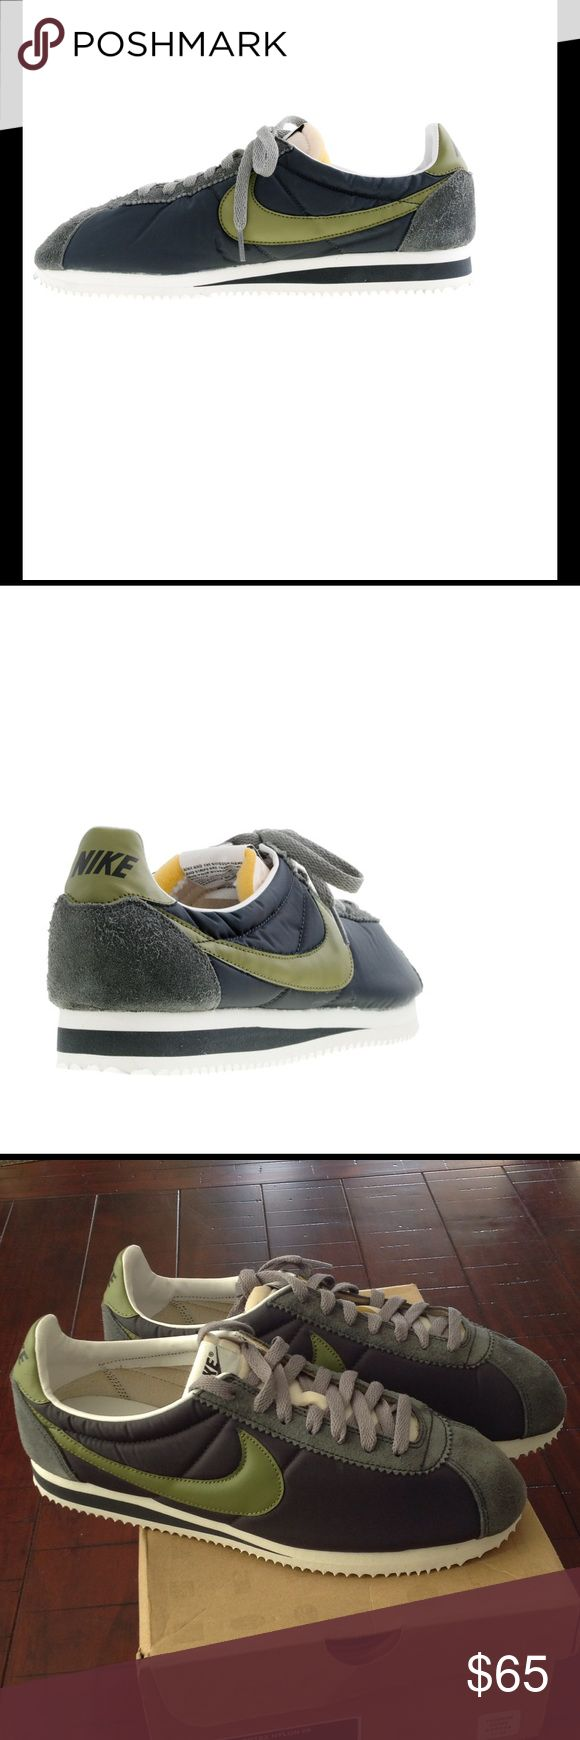 NWT Nike Classic Cortez Nylon 09 Classic Cortez Nylon 09 J CREW Edition ANTHRACITE/GREY/BLUE/PILGRIM. Never worn. Original box included. Nike Shoes